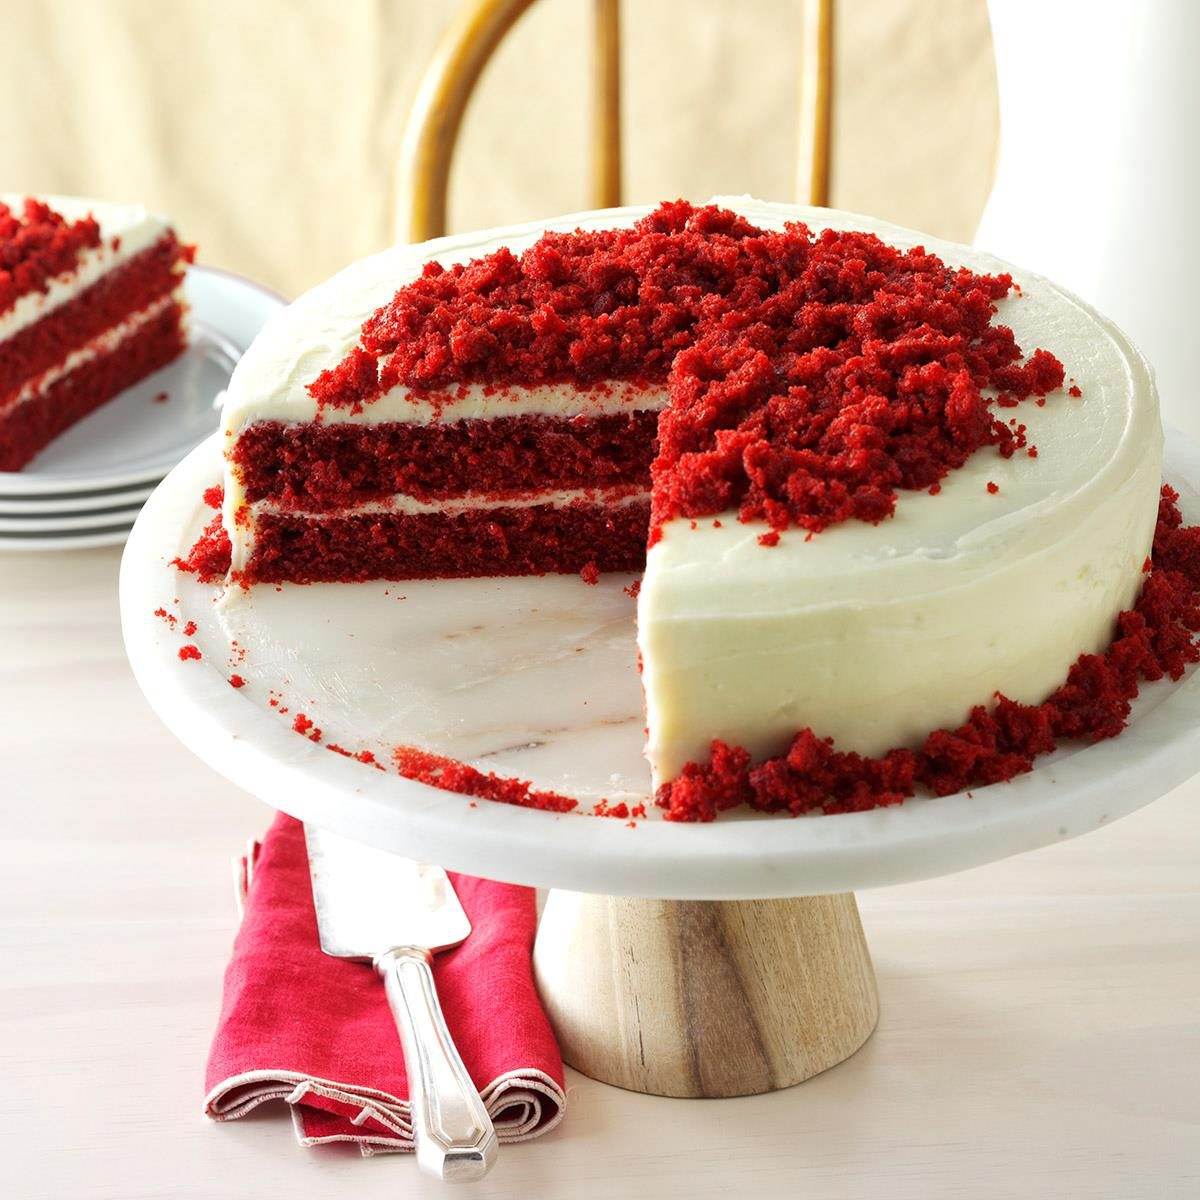 How To Make Red Velvet Cake In Cooker